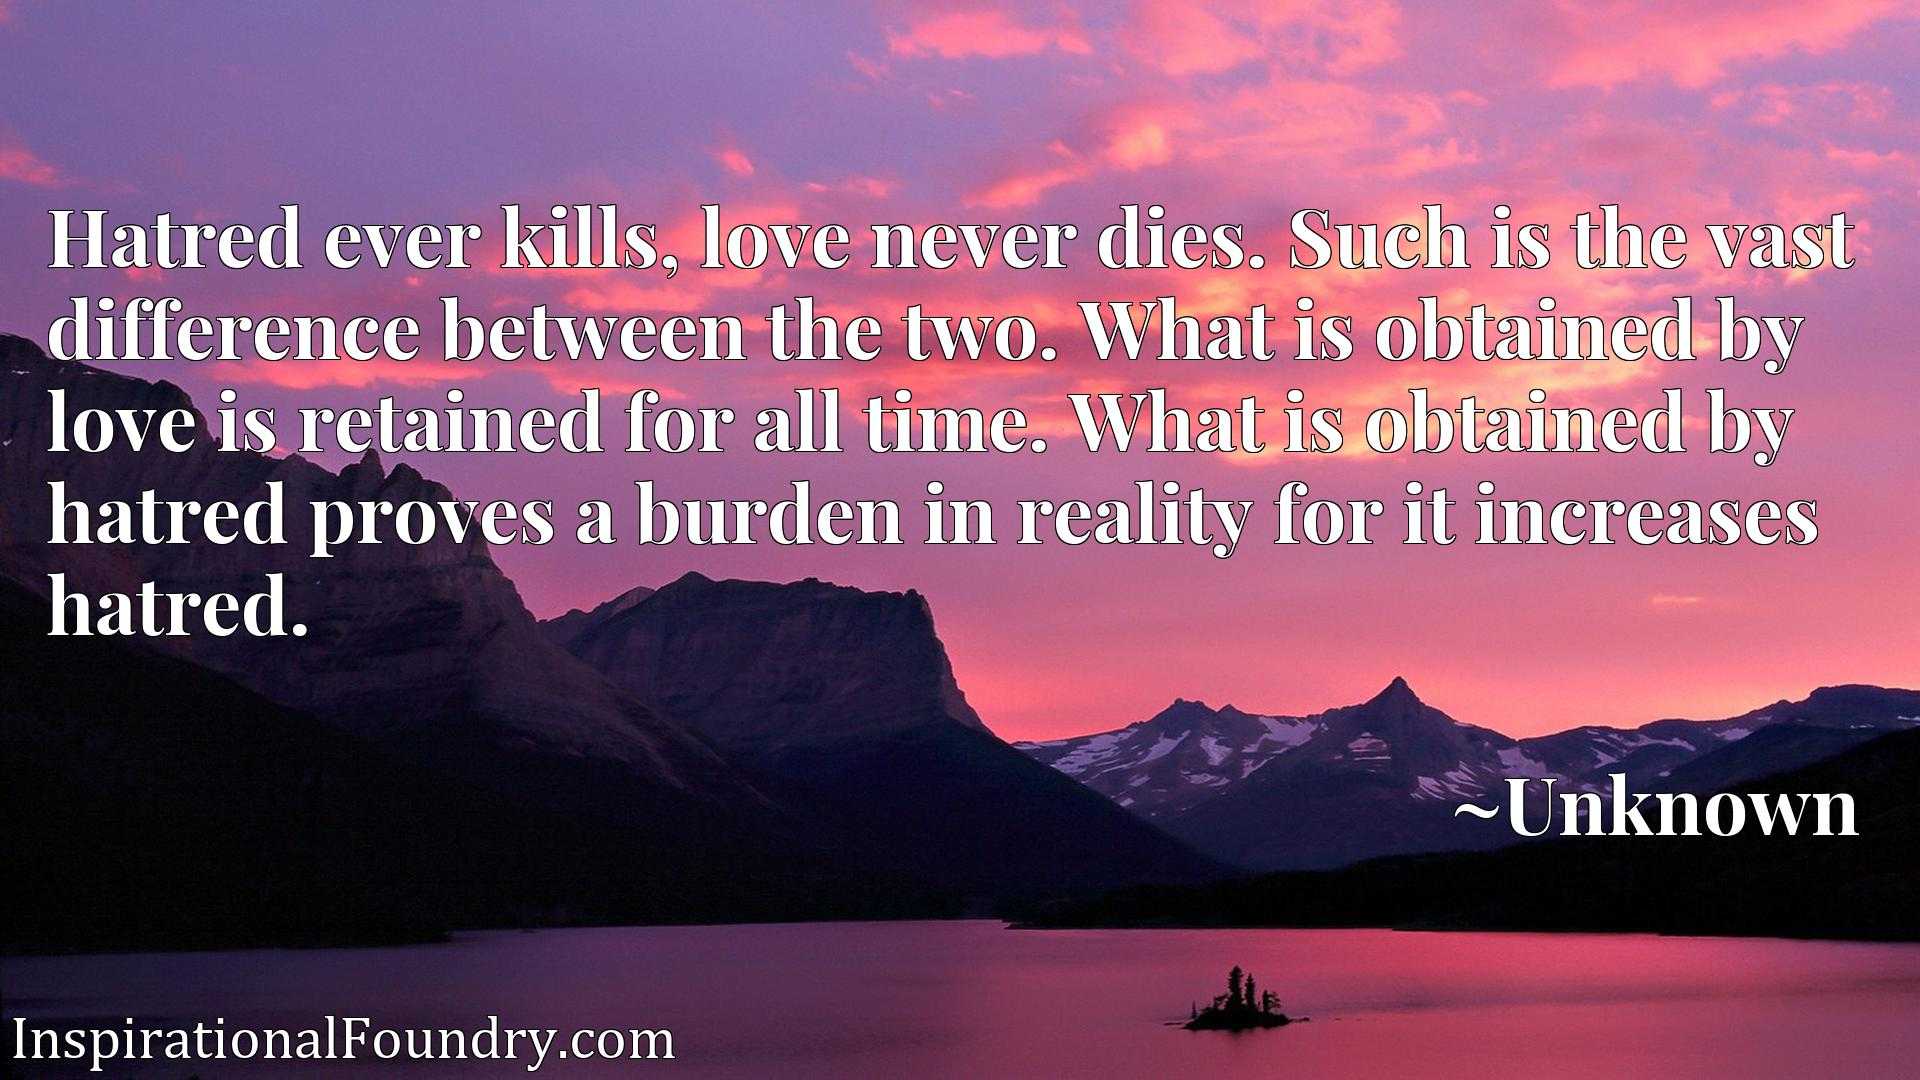 Hatred ever kills, love never dies. Such is the vast difference between the two. What is obtained by love is retained for all time. What is obtained by hatred proves a burden in reality for it increases hatred.